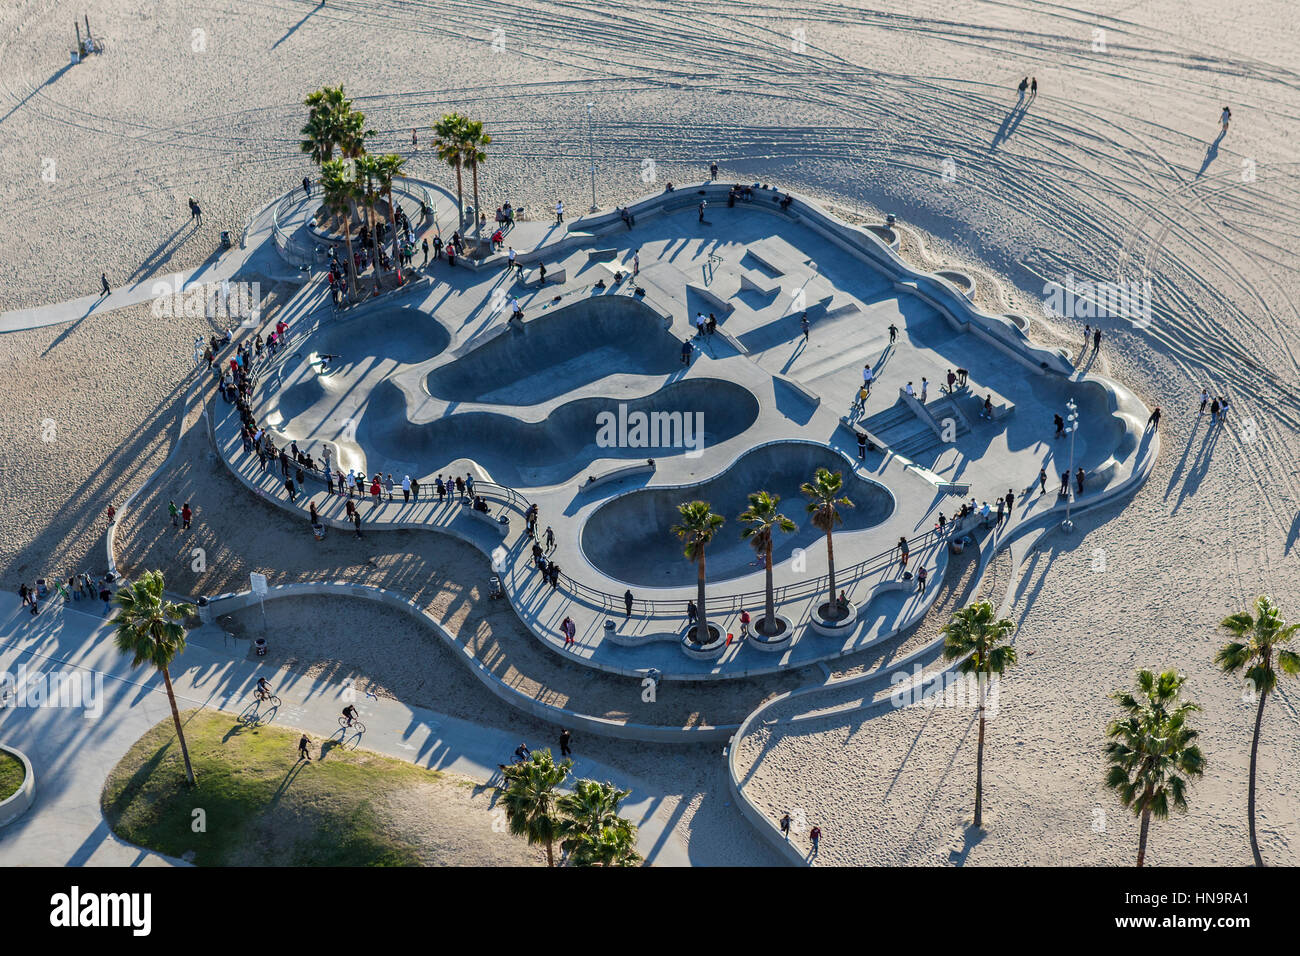 Los Angeles, California, USA - December 17, 2016:  Aerial of popular skateboard park at Venice Beach in Southern - Stock Image